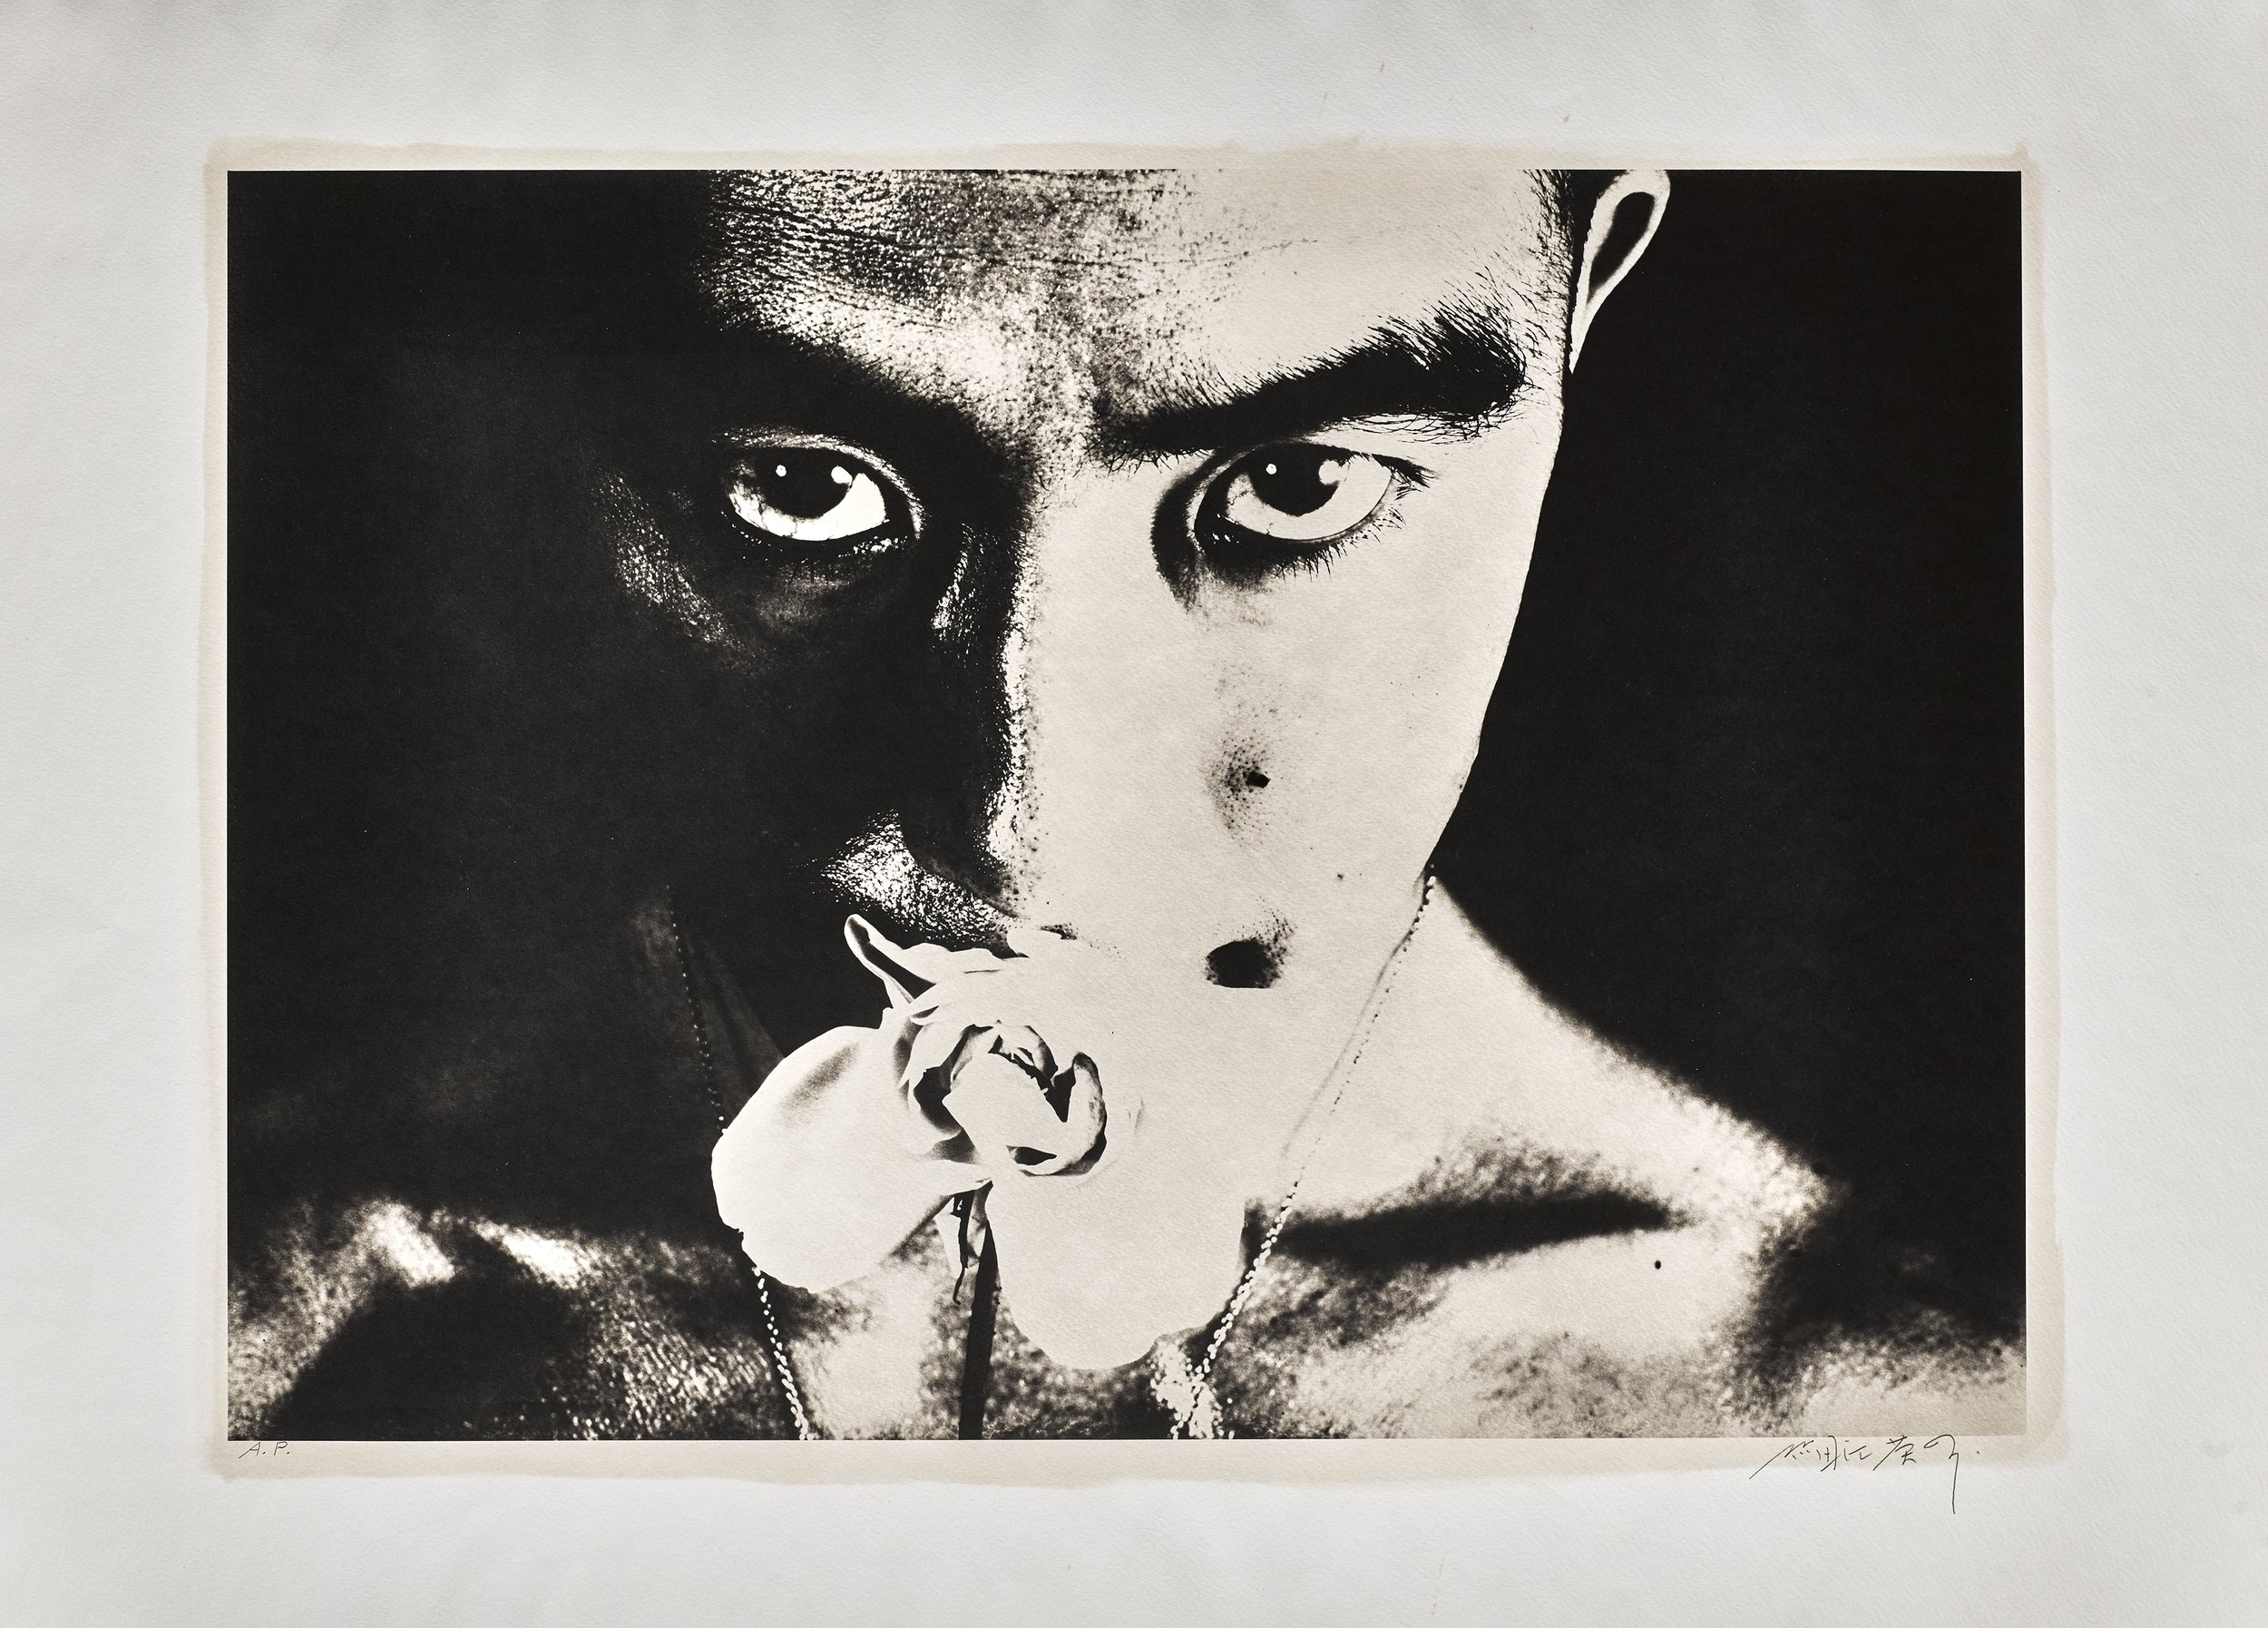 © Eikoh Hosoe, Ordeal by Rose #32, 1961, Ordeal by Roses, platinum-palladium printed at Hosoe's studio in Karuitzawa in three series in 1988. Image: 54 x 74 cm, Frame: 61 x 81 cm, Unique piece, signed and numbered 262